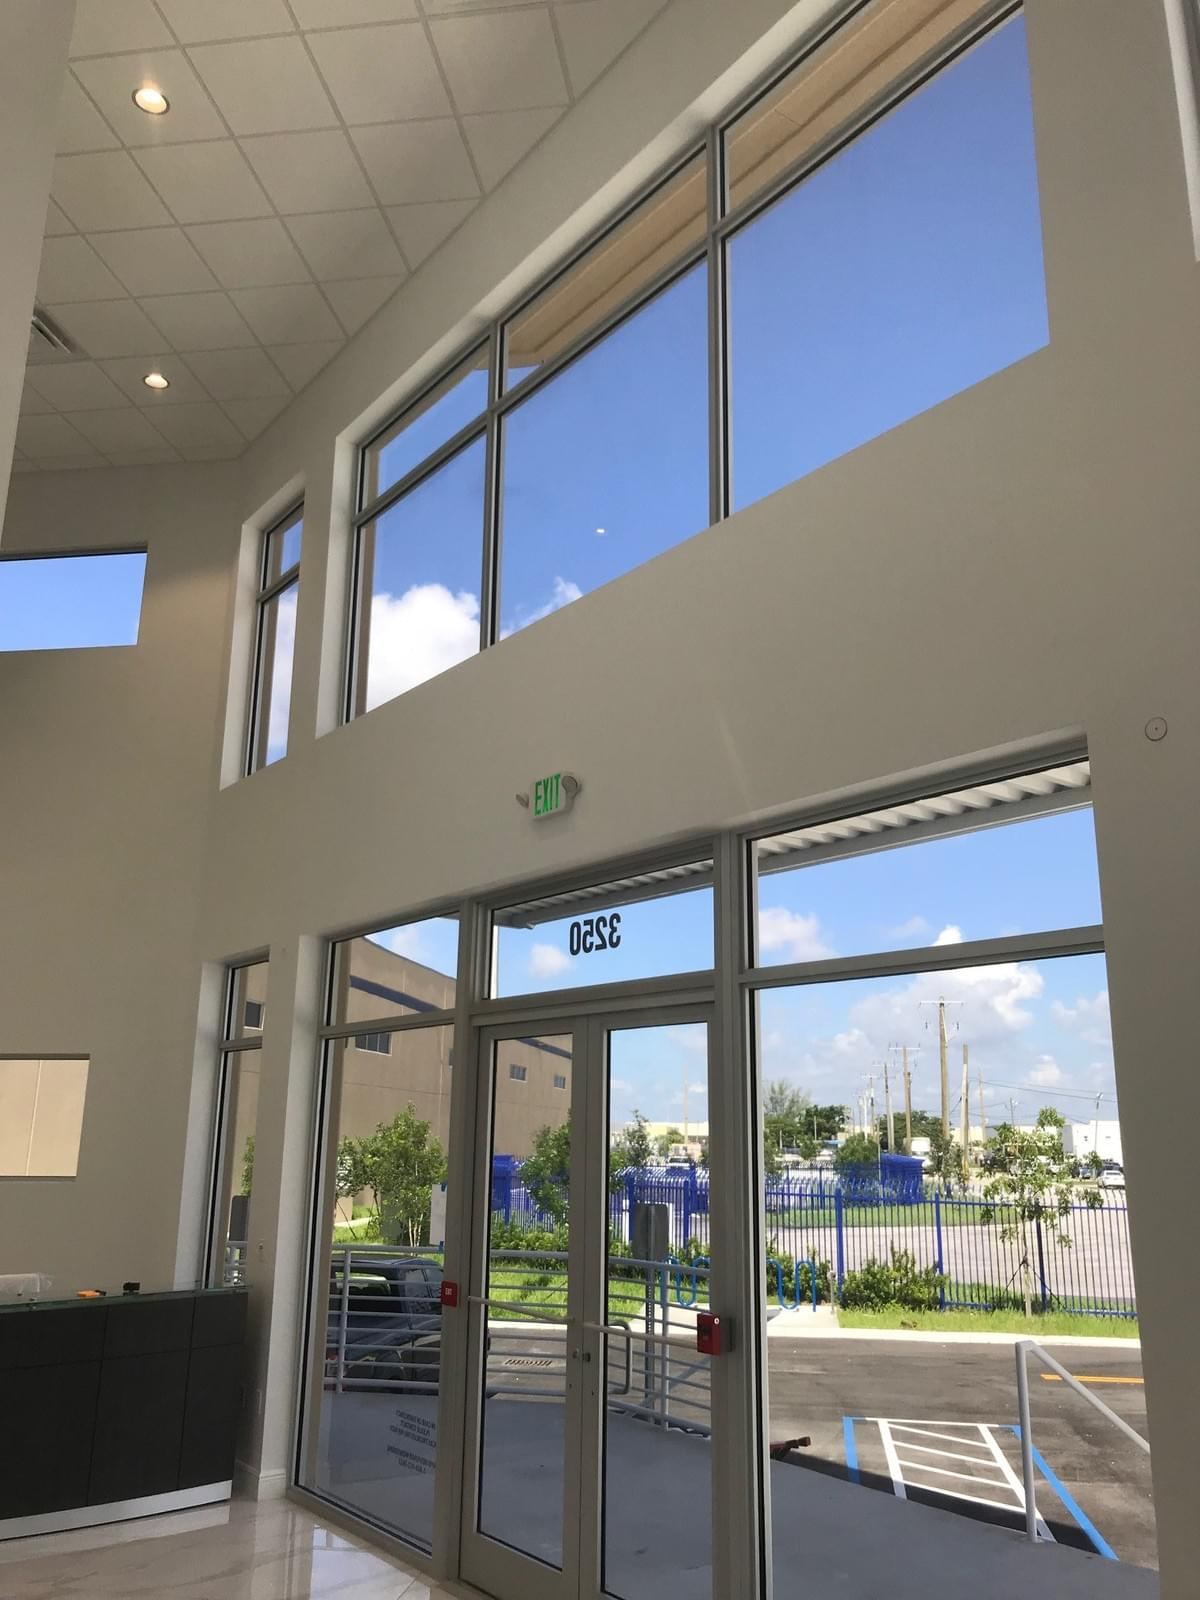 Miami commercial window tinting, Miami office building window tinting, Miami glass tinting, Miami storefront window tinting